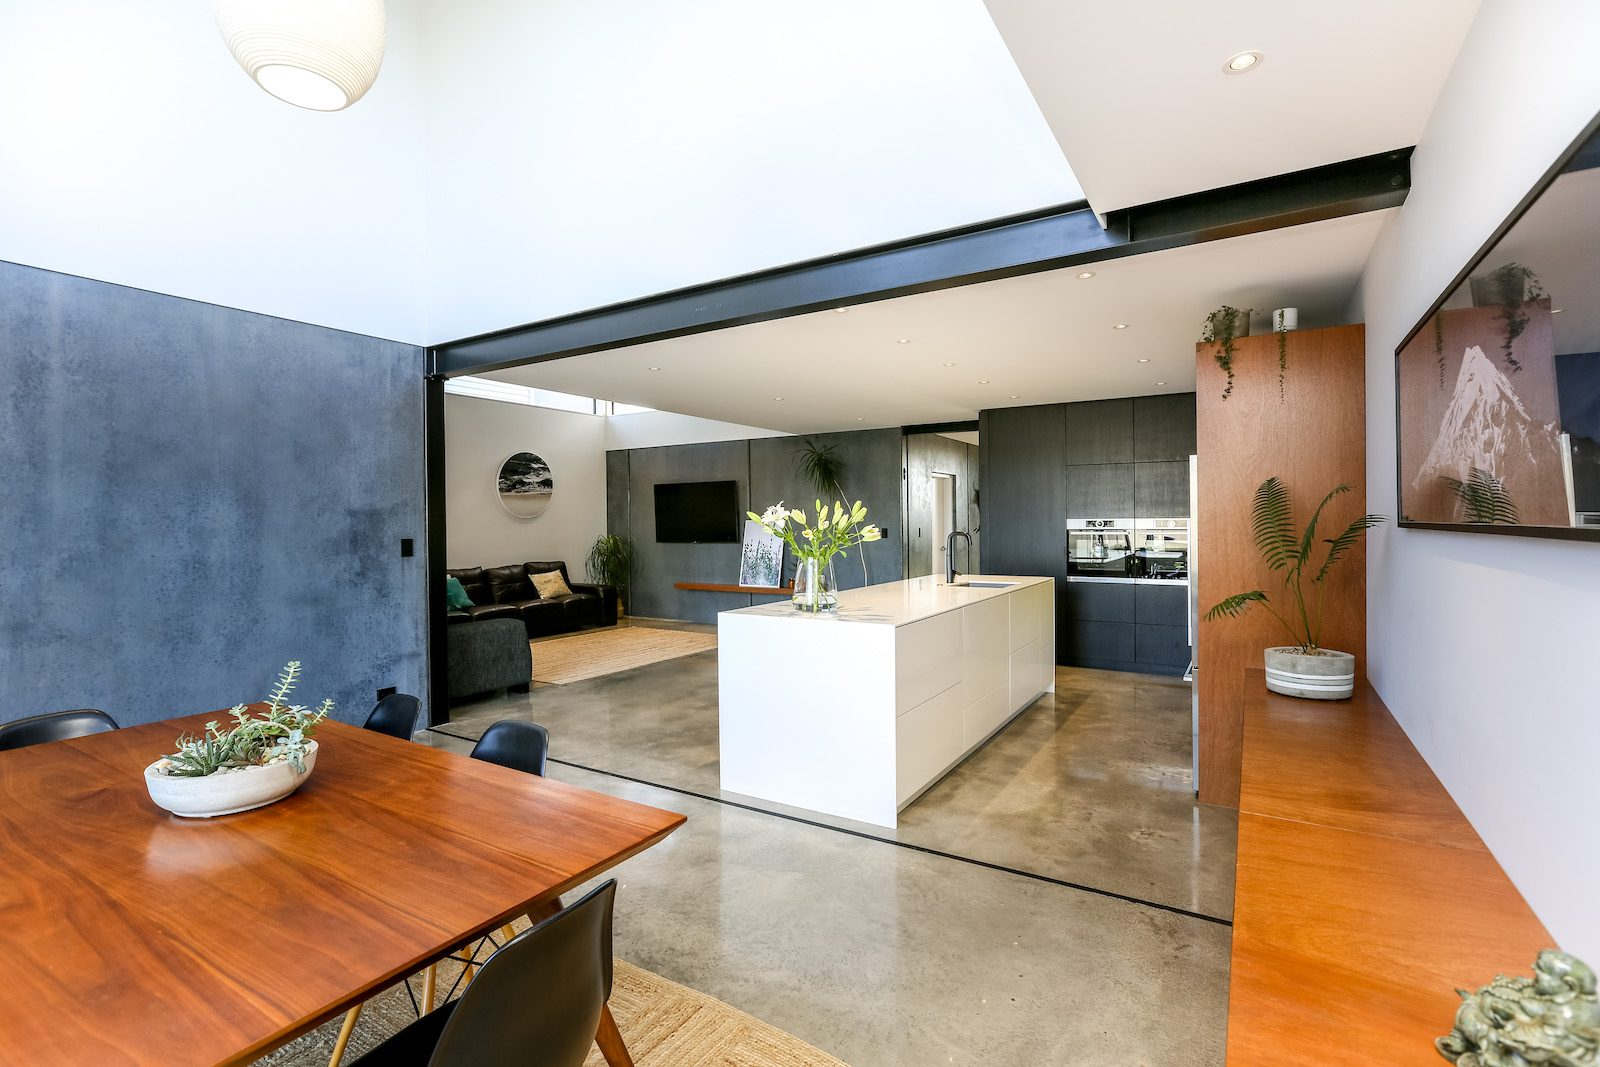 A new home build created by Profound Group